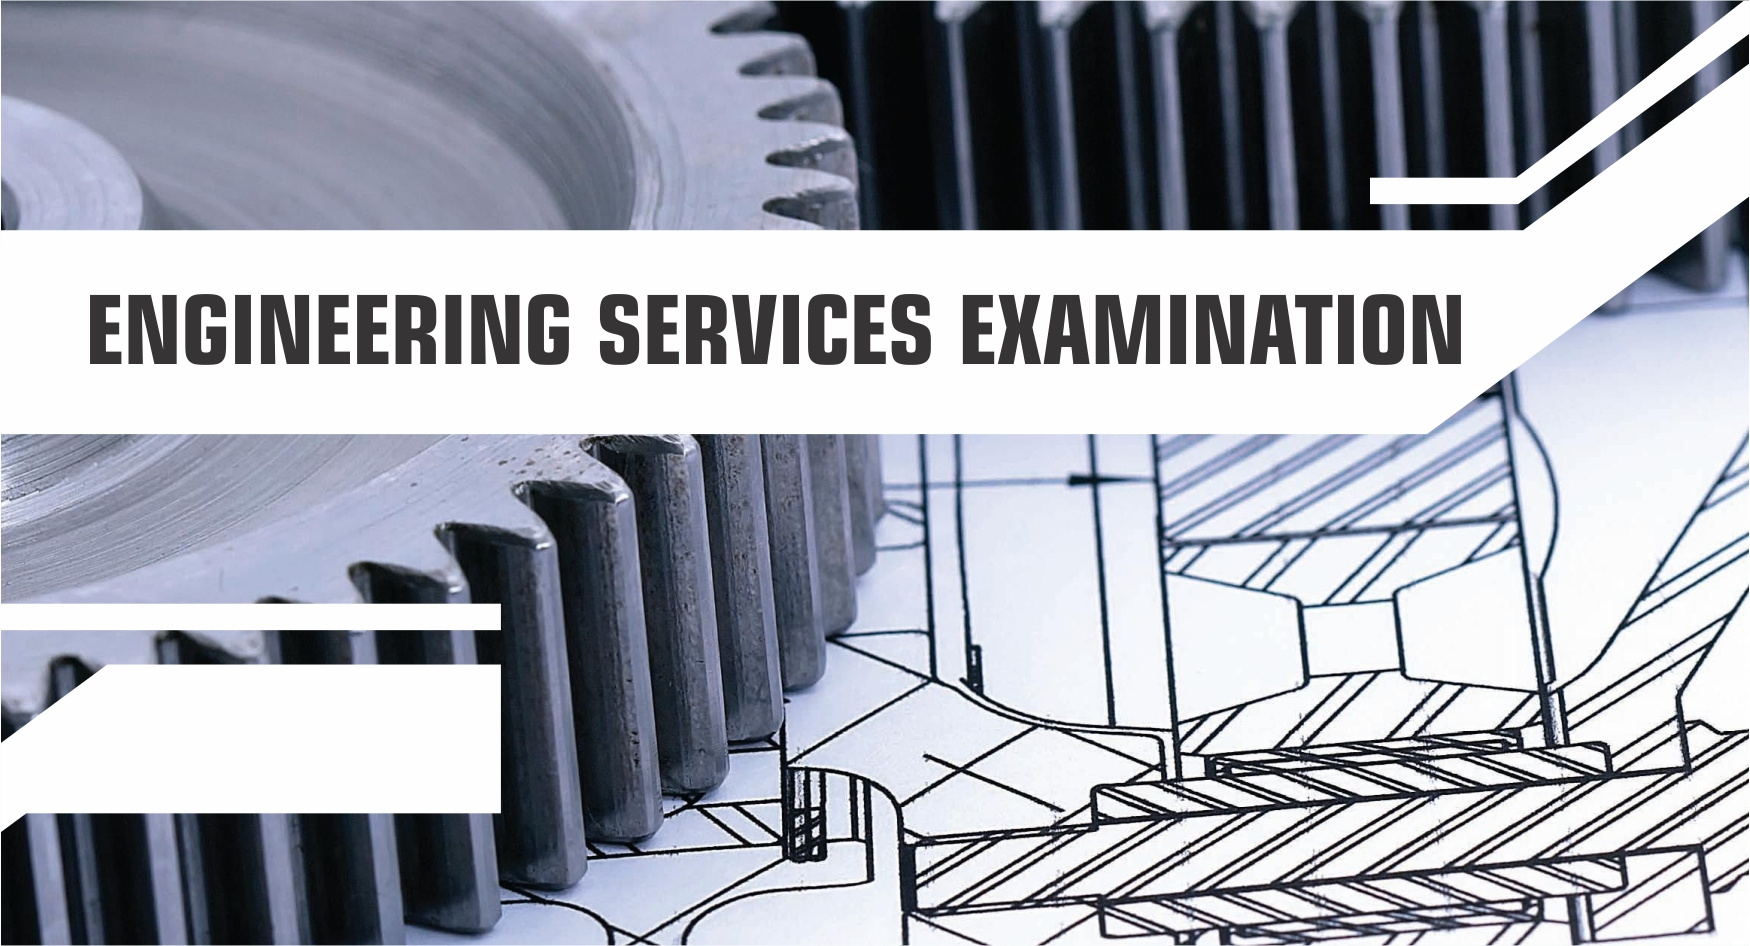 Exams under UPSC - Engineering Services Examination